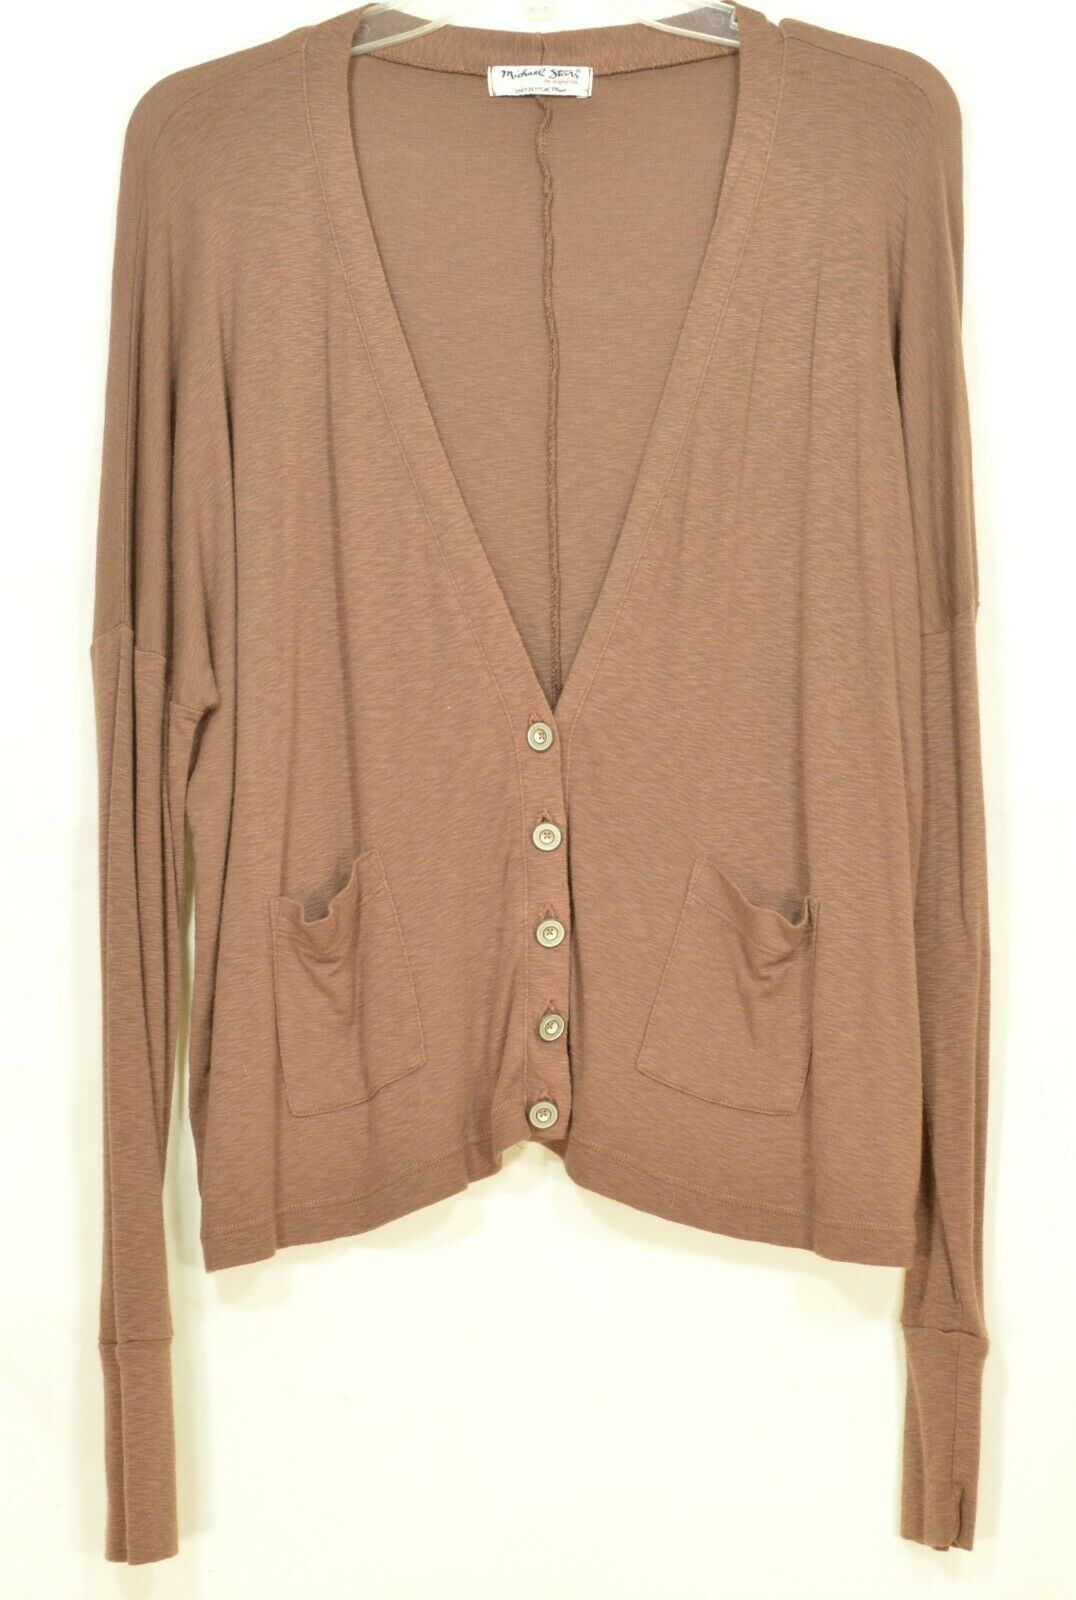 Michael Stars sweater OSFM brown cardigan dropped shoulders lightweight fall USA image 5